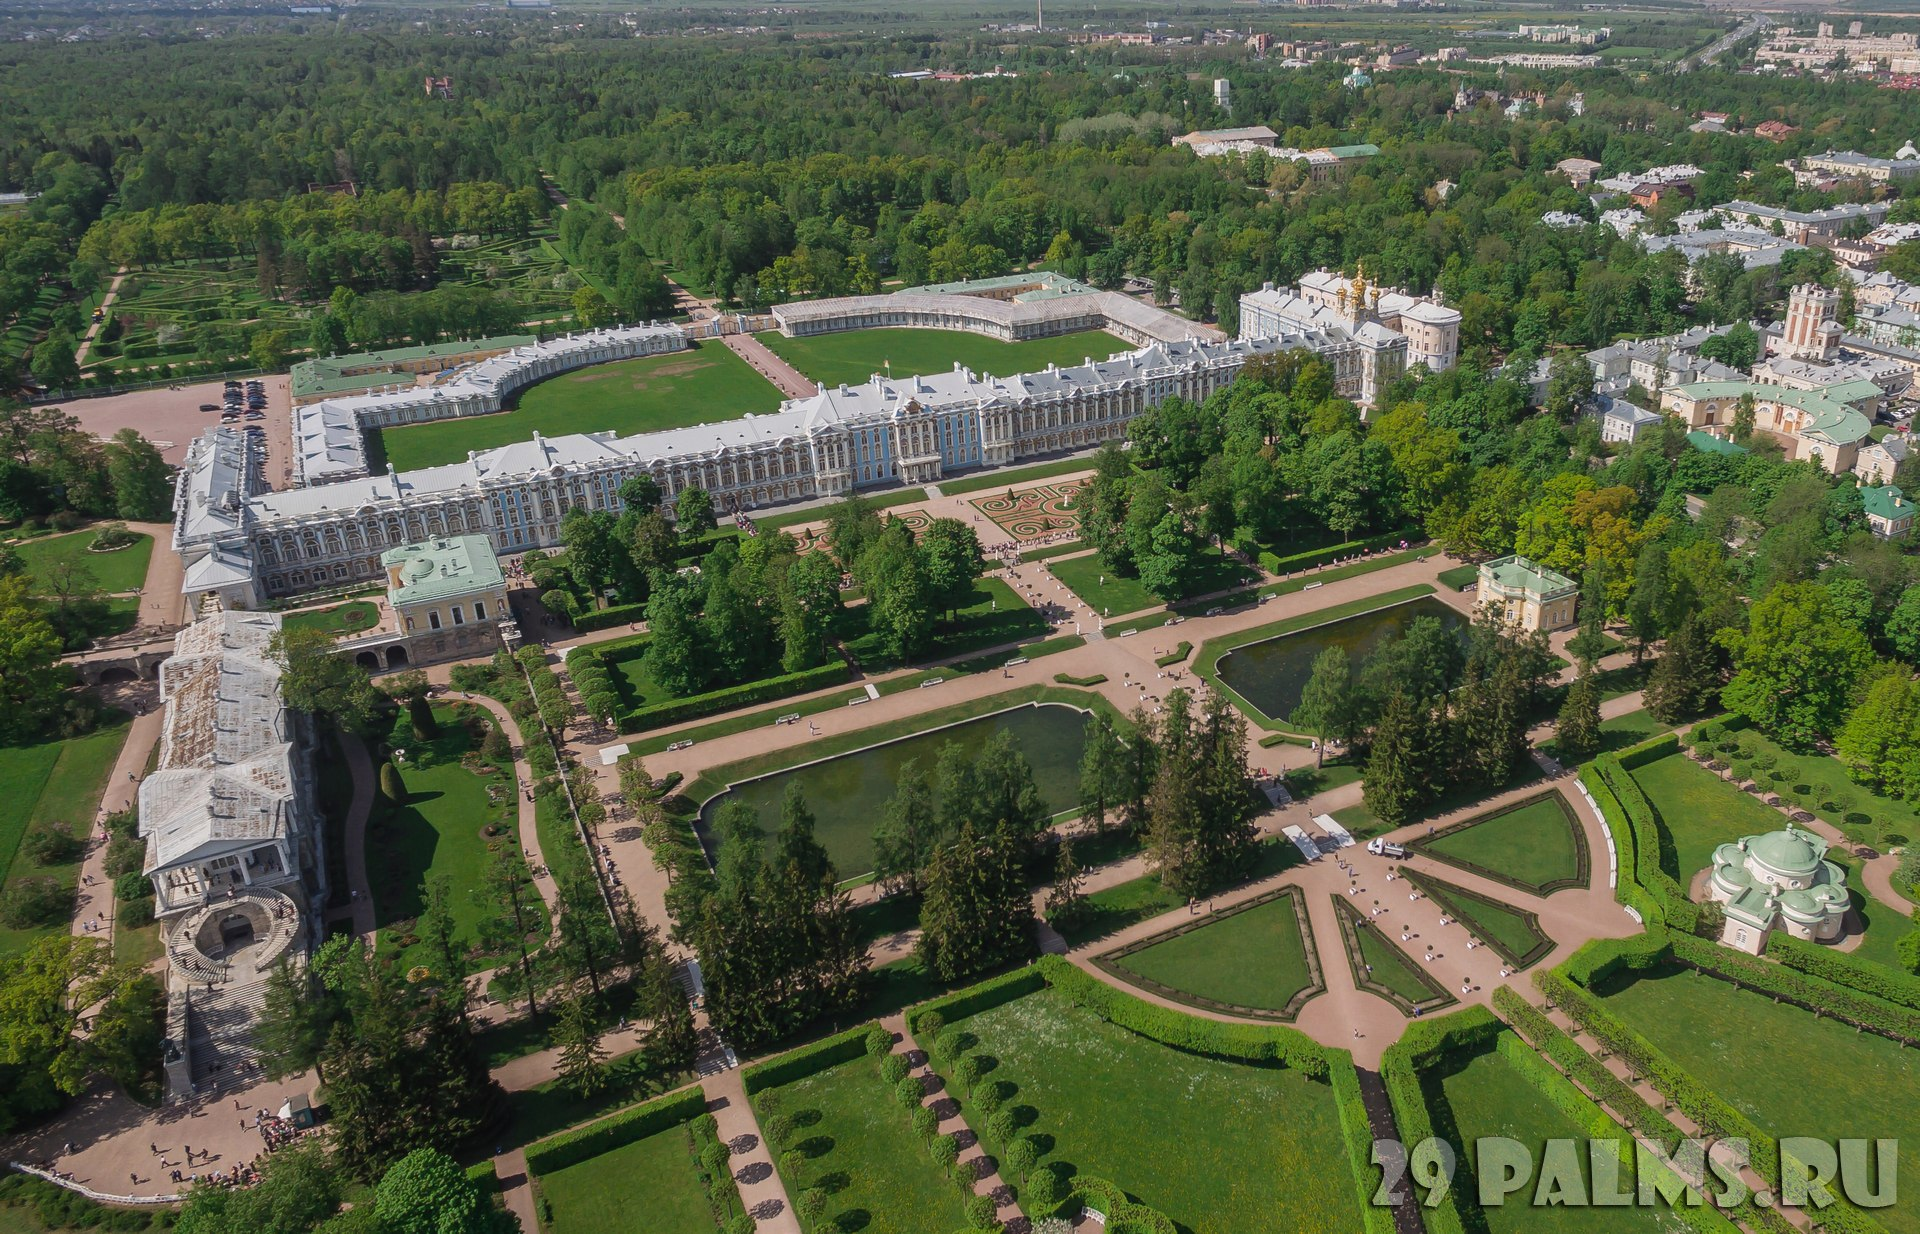 Санкт-Петербург. Царское село (Пушкин). Екатерининский дворец и парк. Aerial view of Catherine palace and Catherine park in Pushkin. Фото a_medvedkov-Deposit